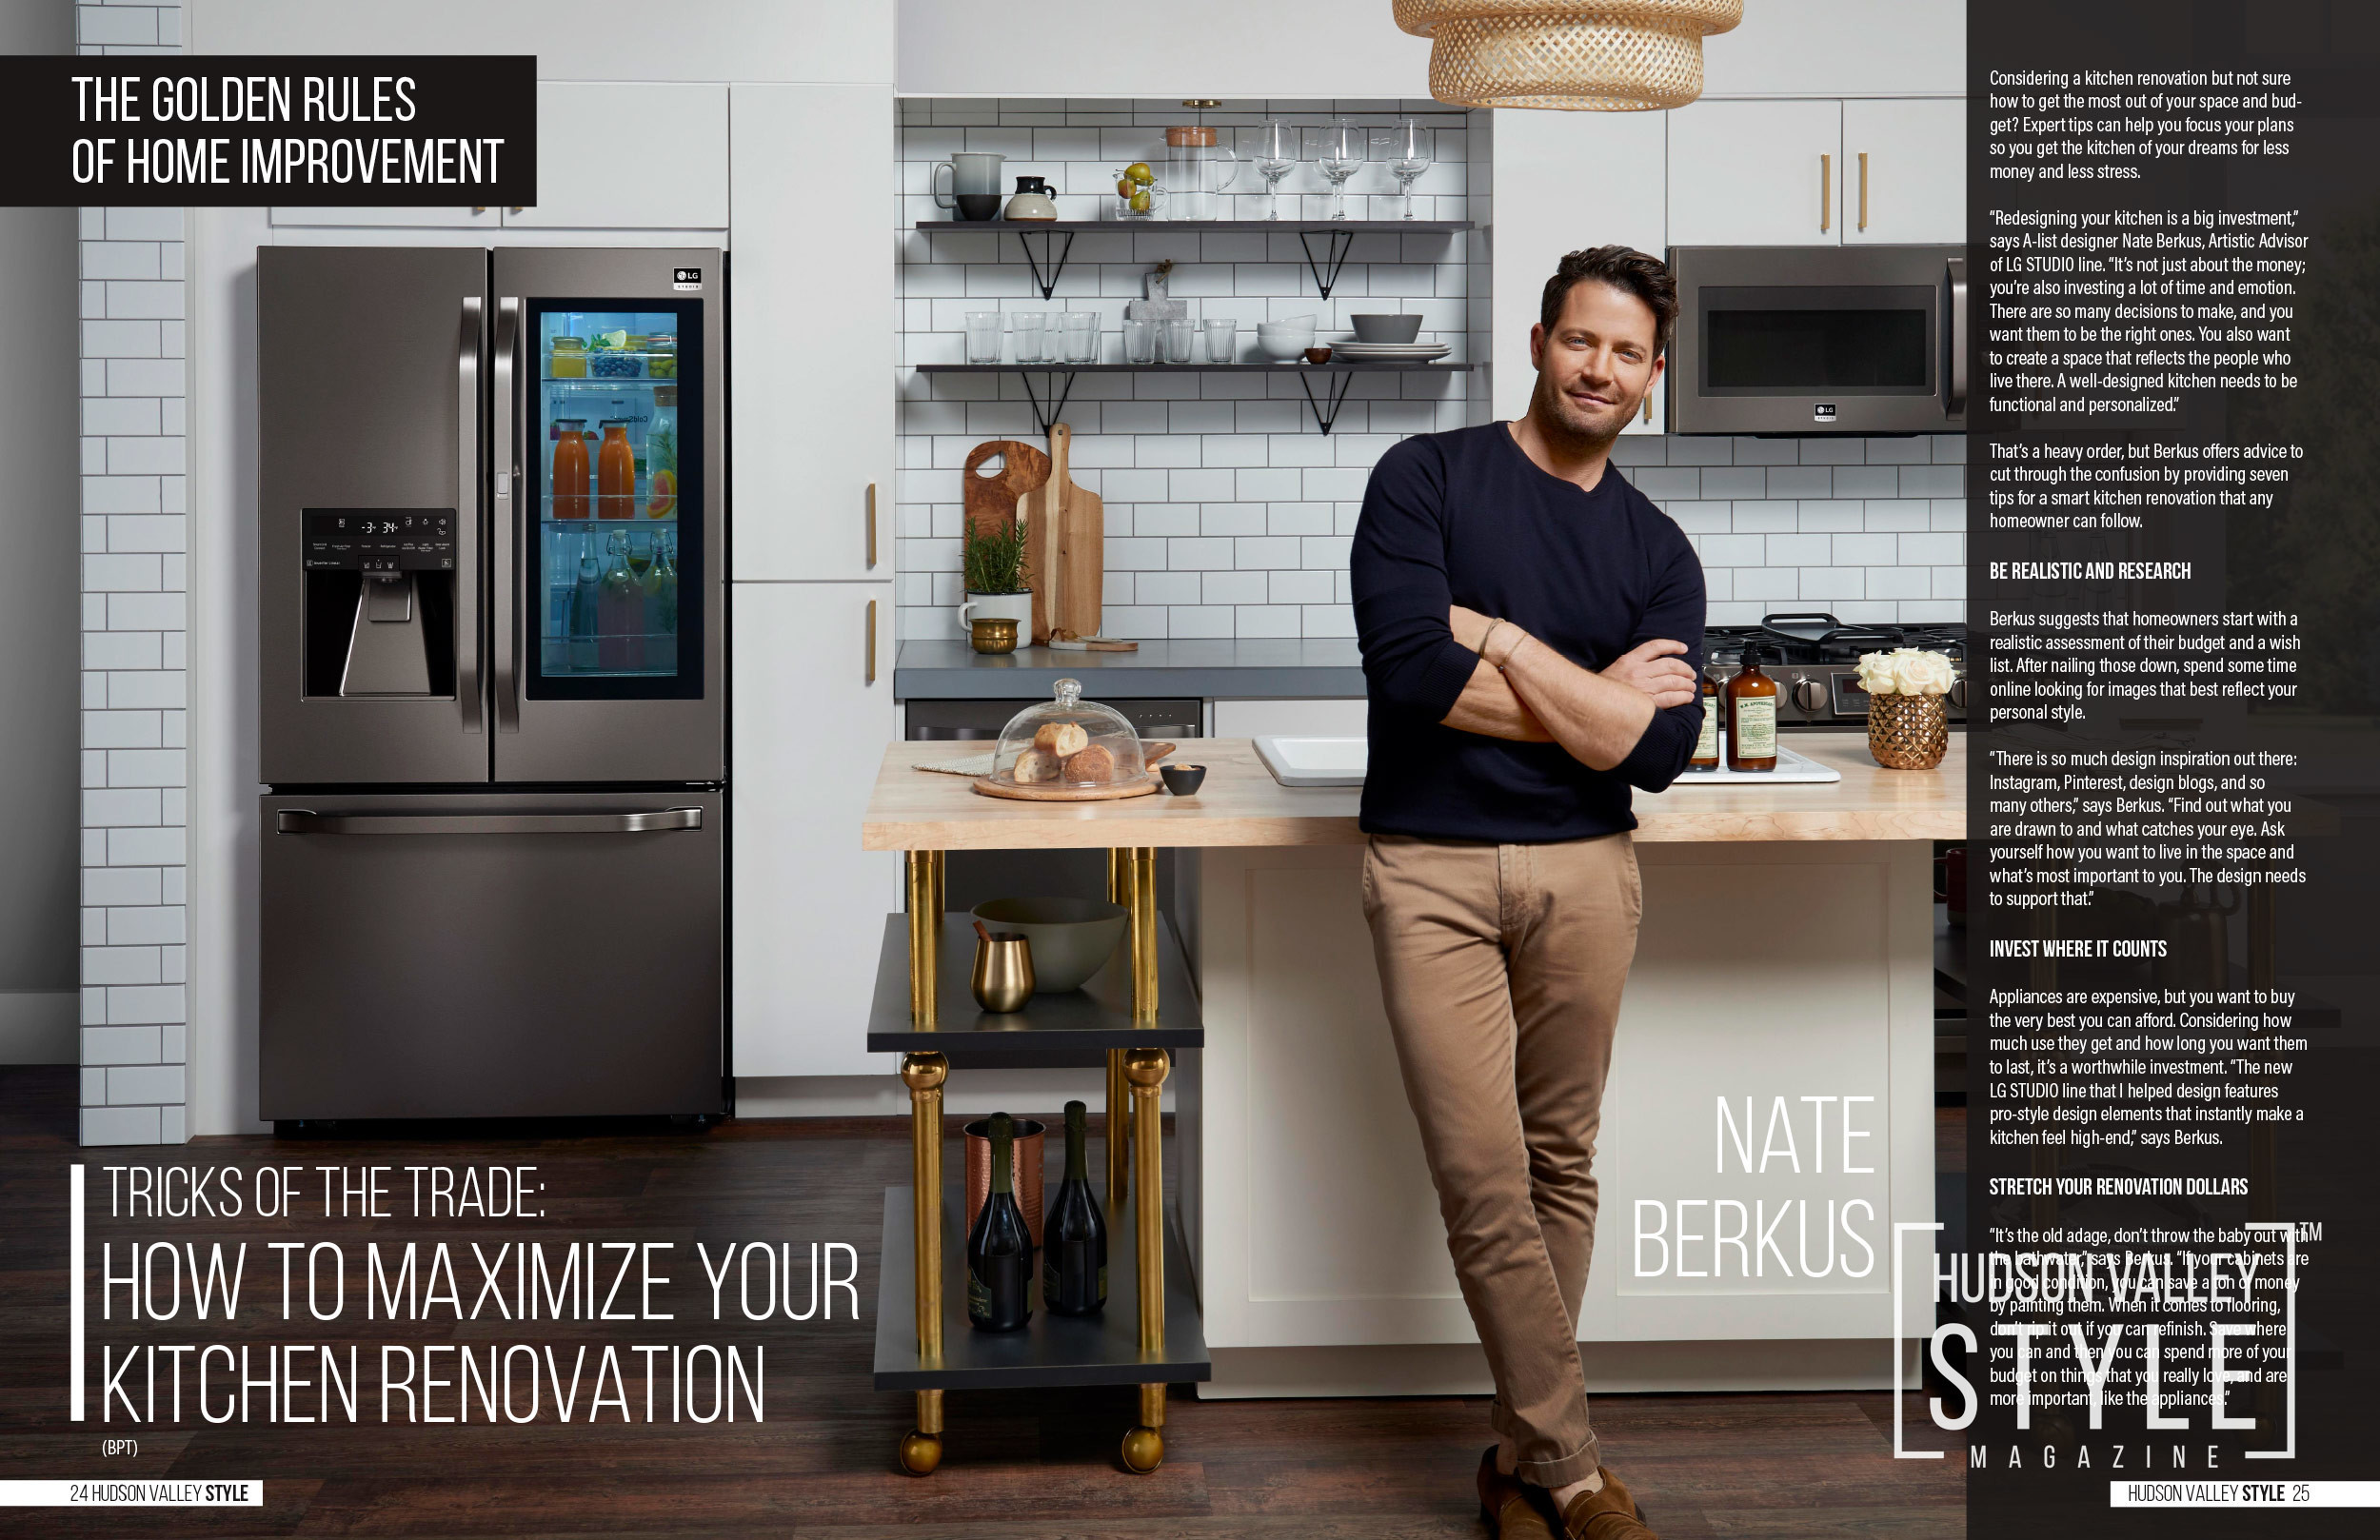 Tricks of the trade: How to maximize your kitchen renovation The golden rules of home improvement